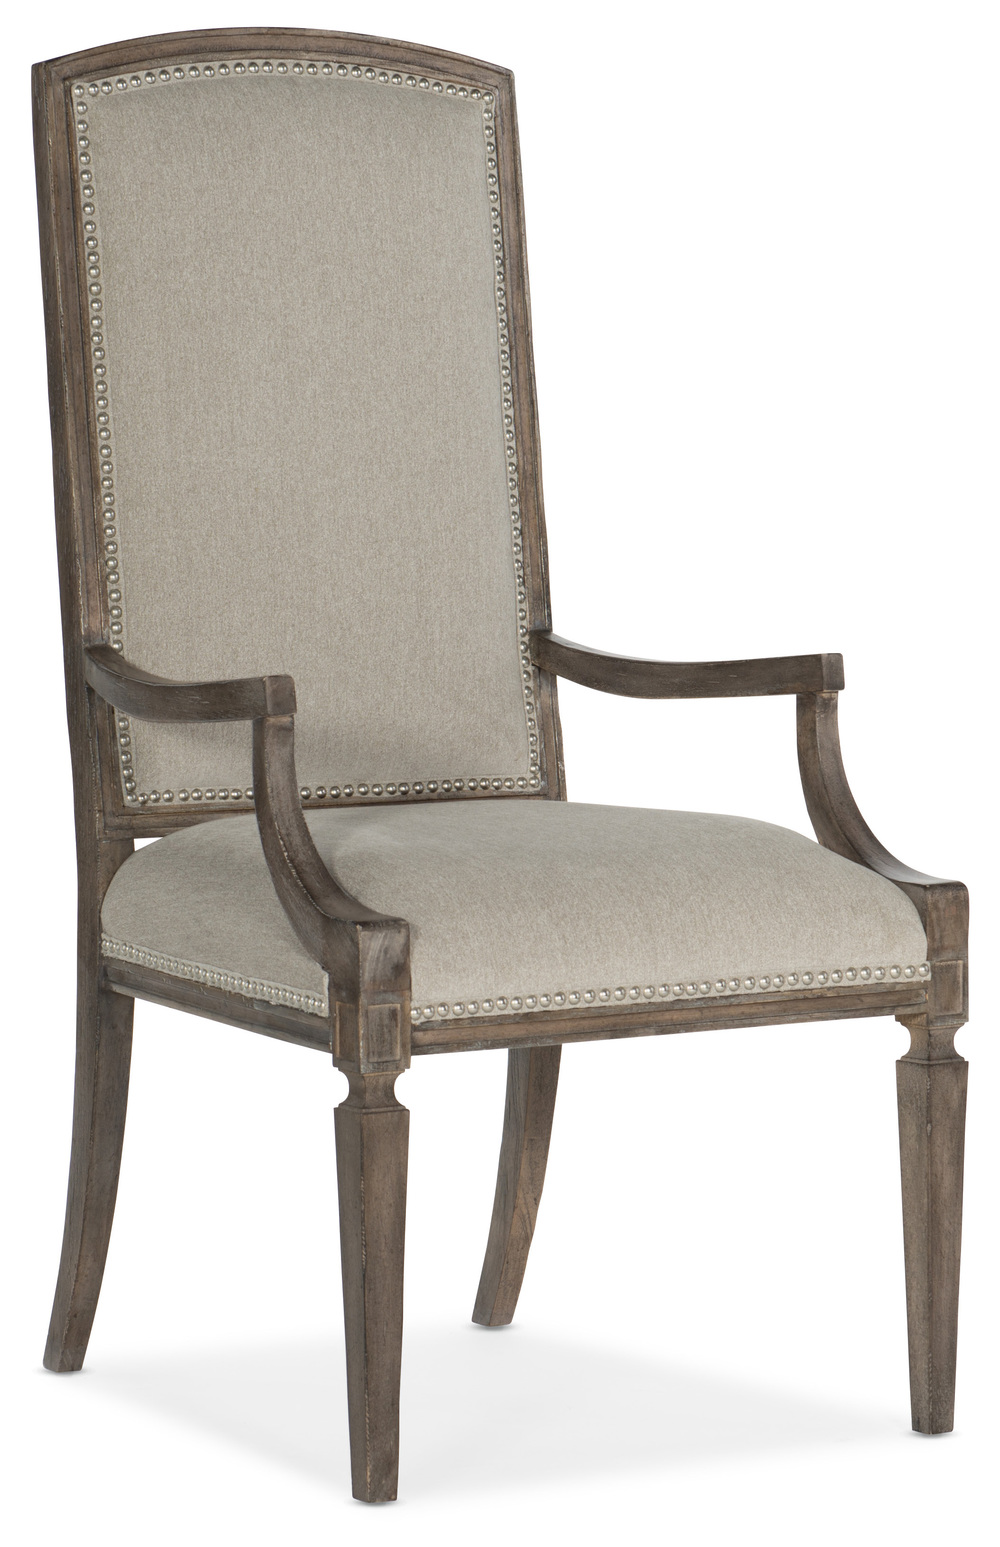 HOOKER FURNITURE CO - Arched Upholstered Arm Chair